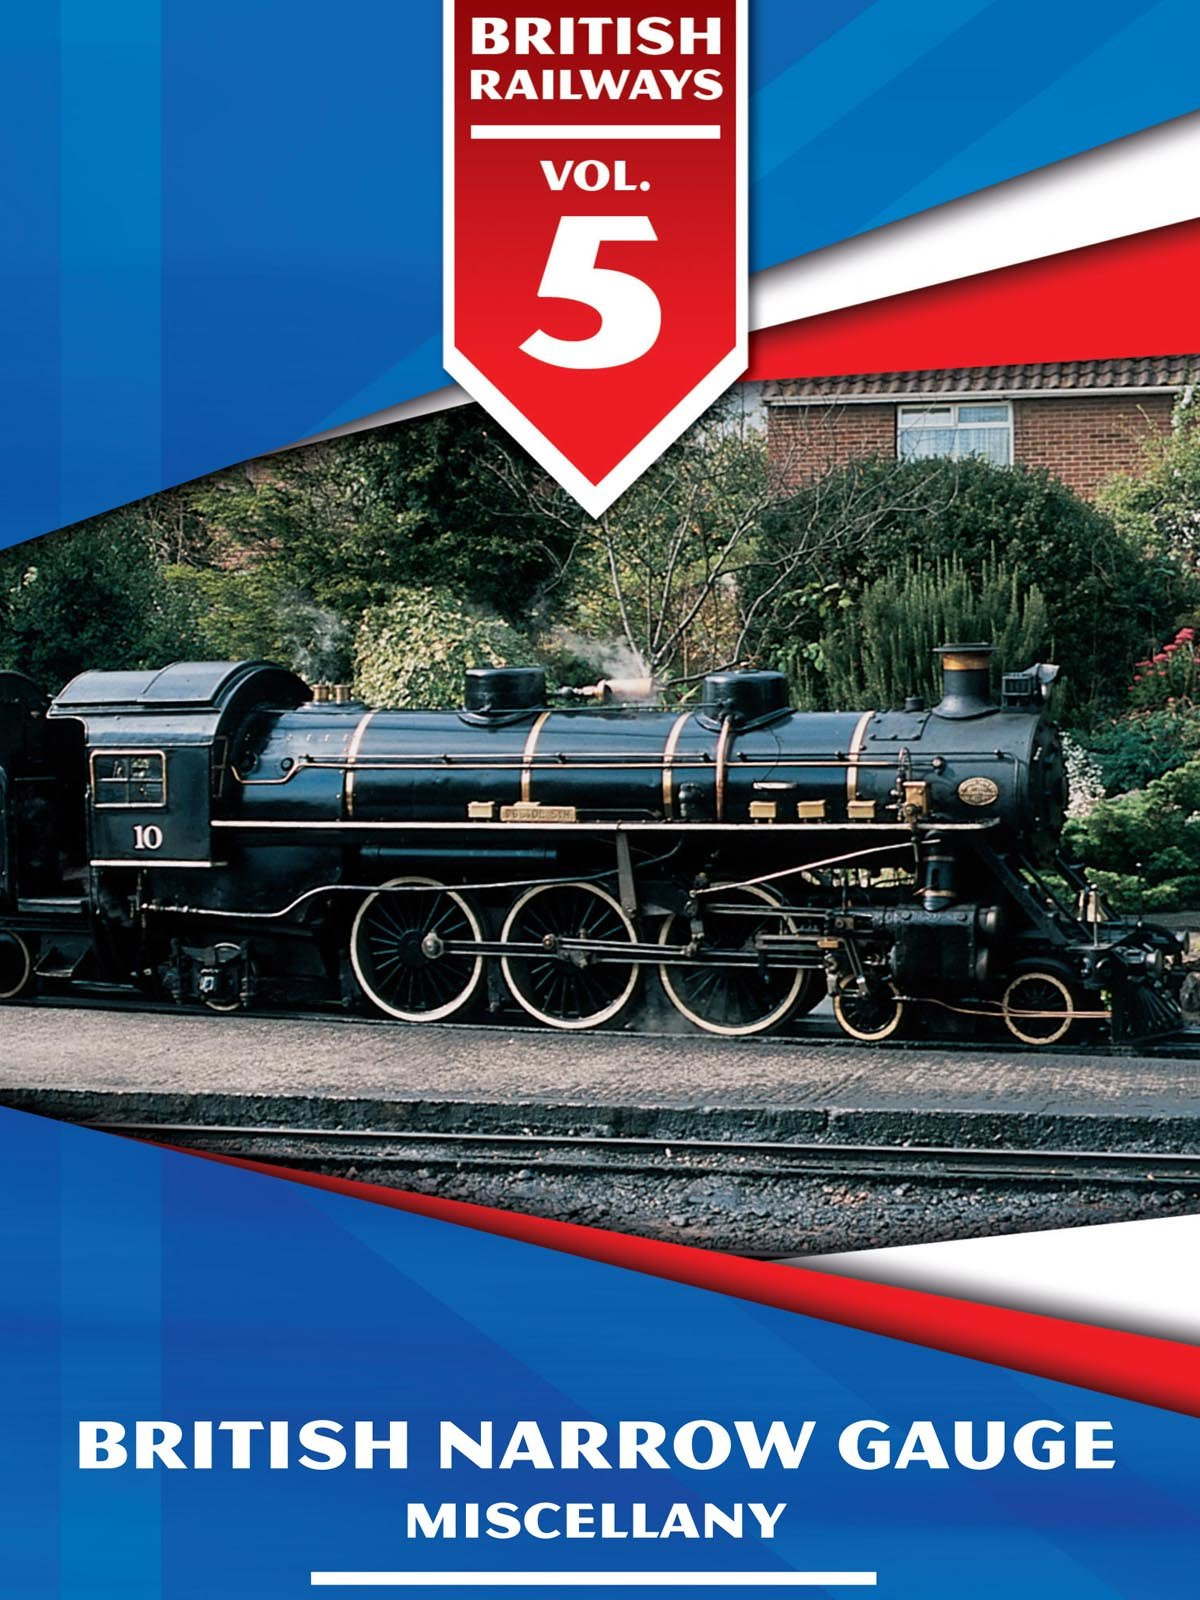 British Railways Volume 5: British Narrow Gauge Miscellany